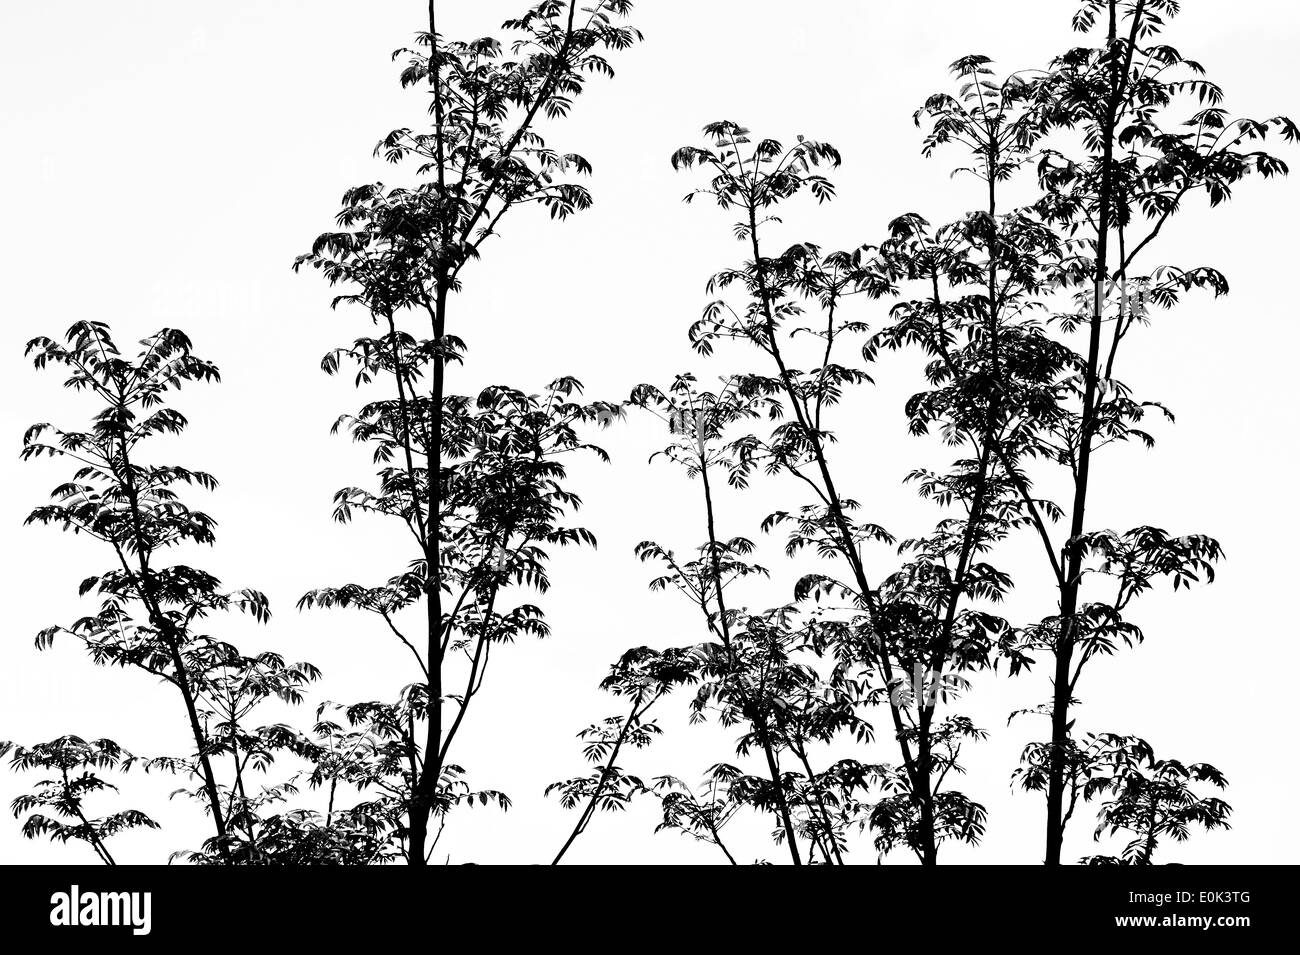 Toona sinensis 'Flamingo'. Chinese Mahogany 'Flamingo' tree branches and leaves against a white background. Black and White - Stock Image